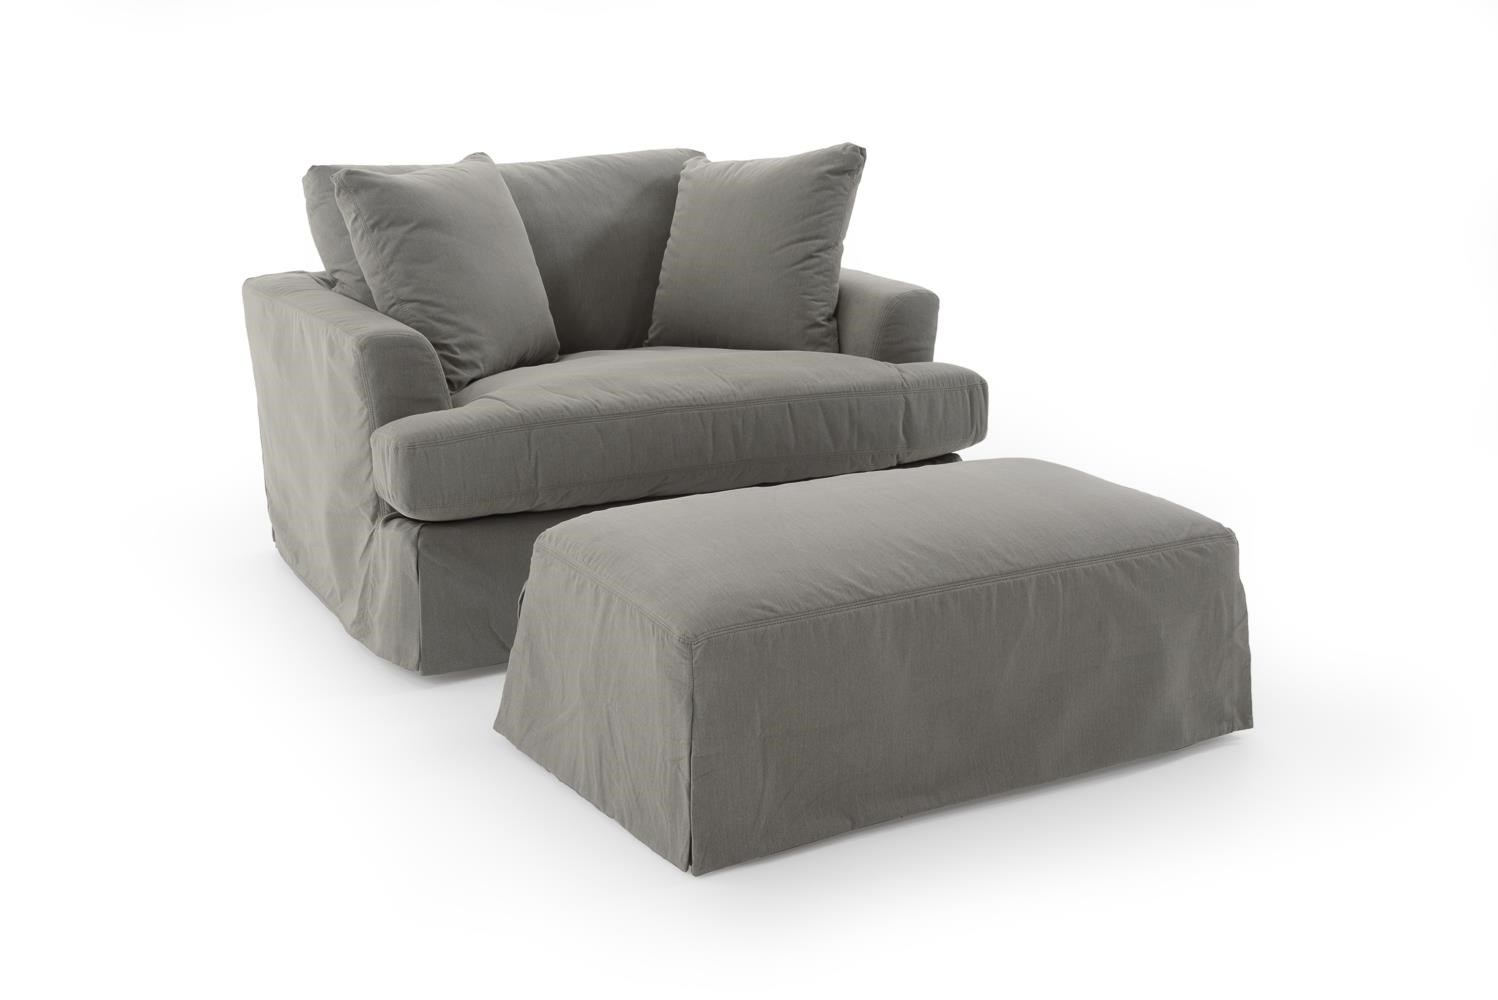 1300 Chair and Ottoman Set by Synergy Home Furnishings at Baer's Furniture